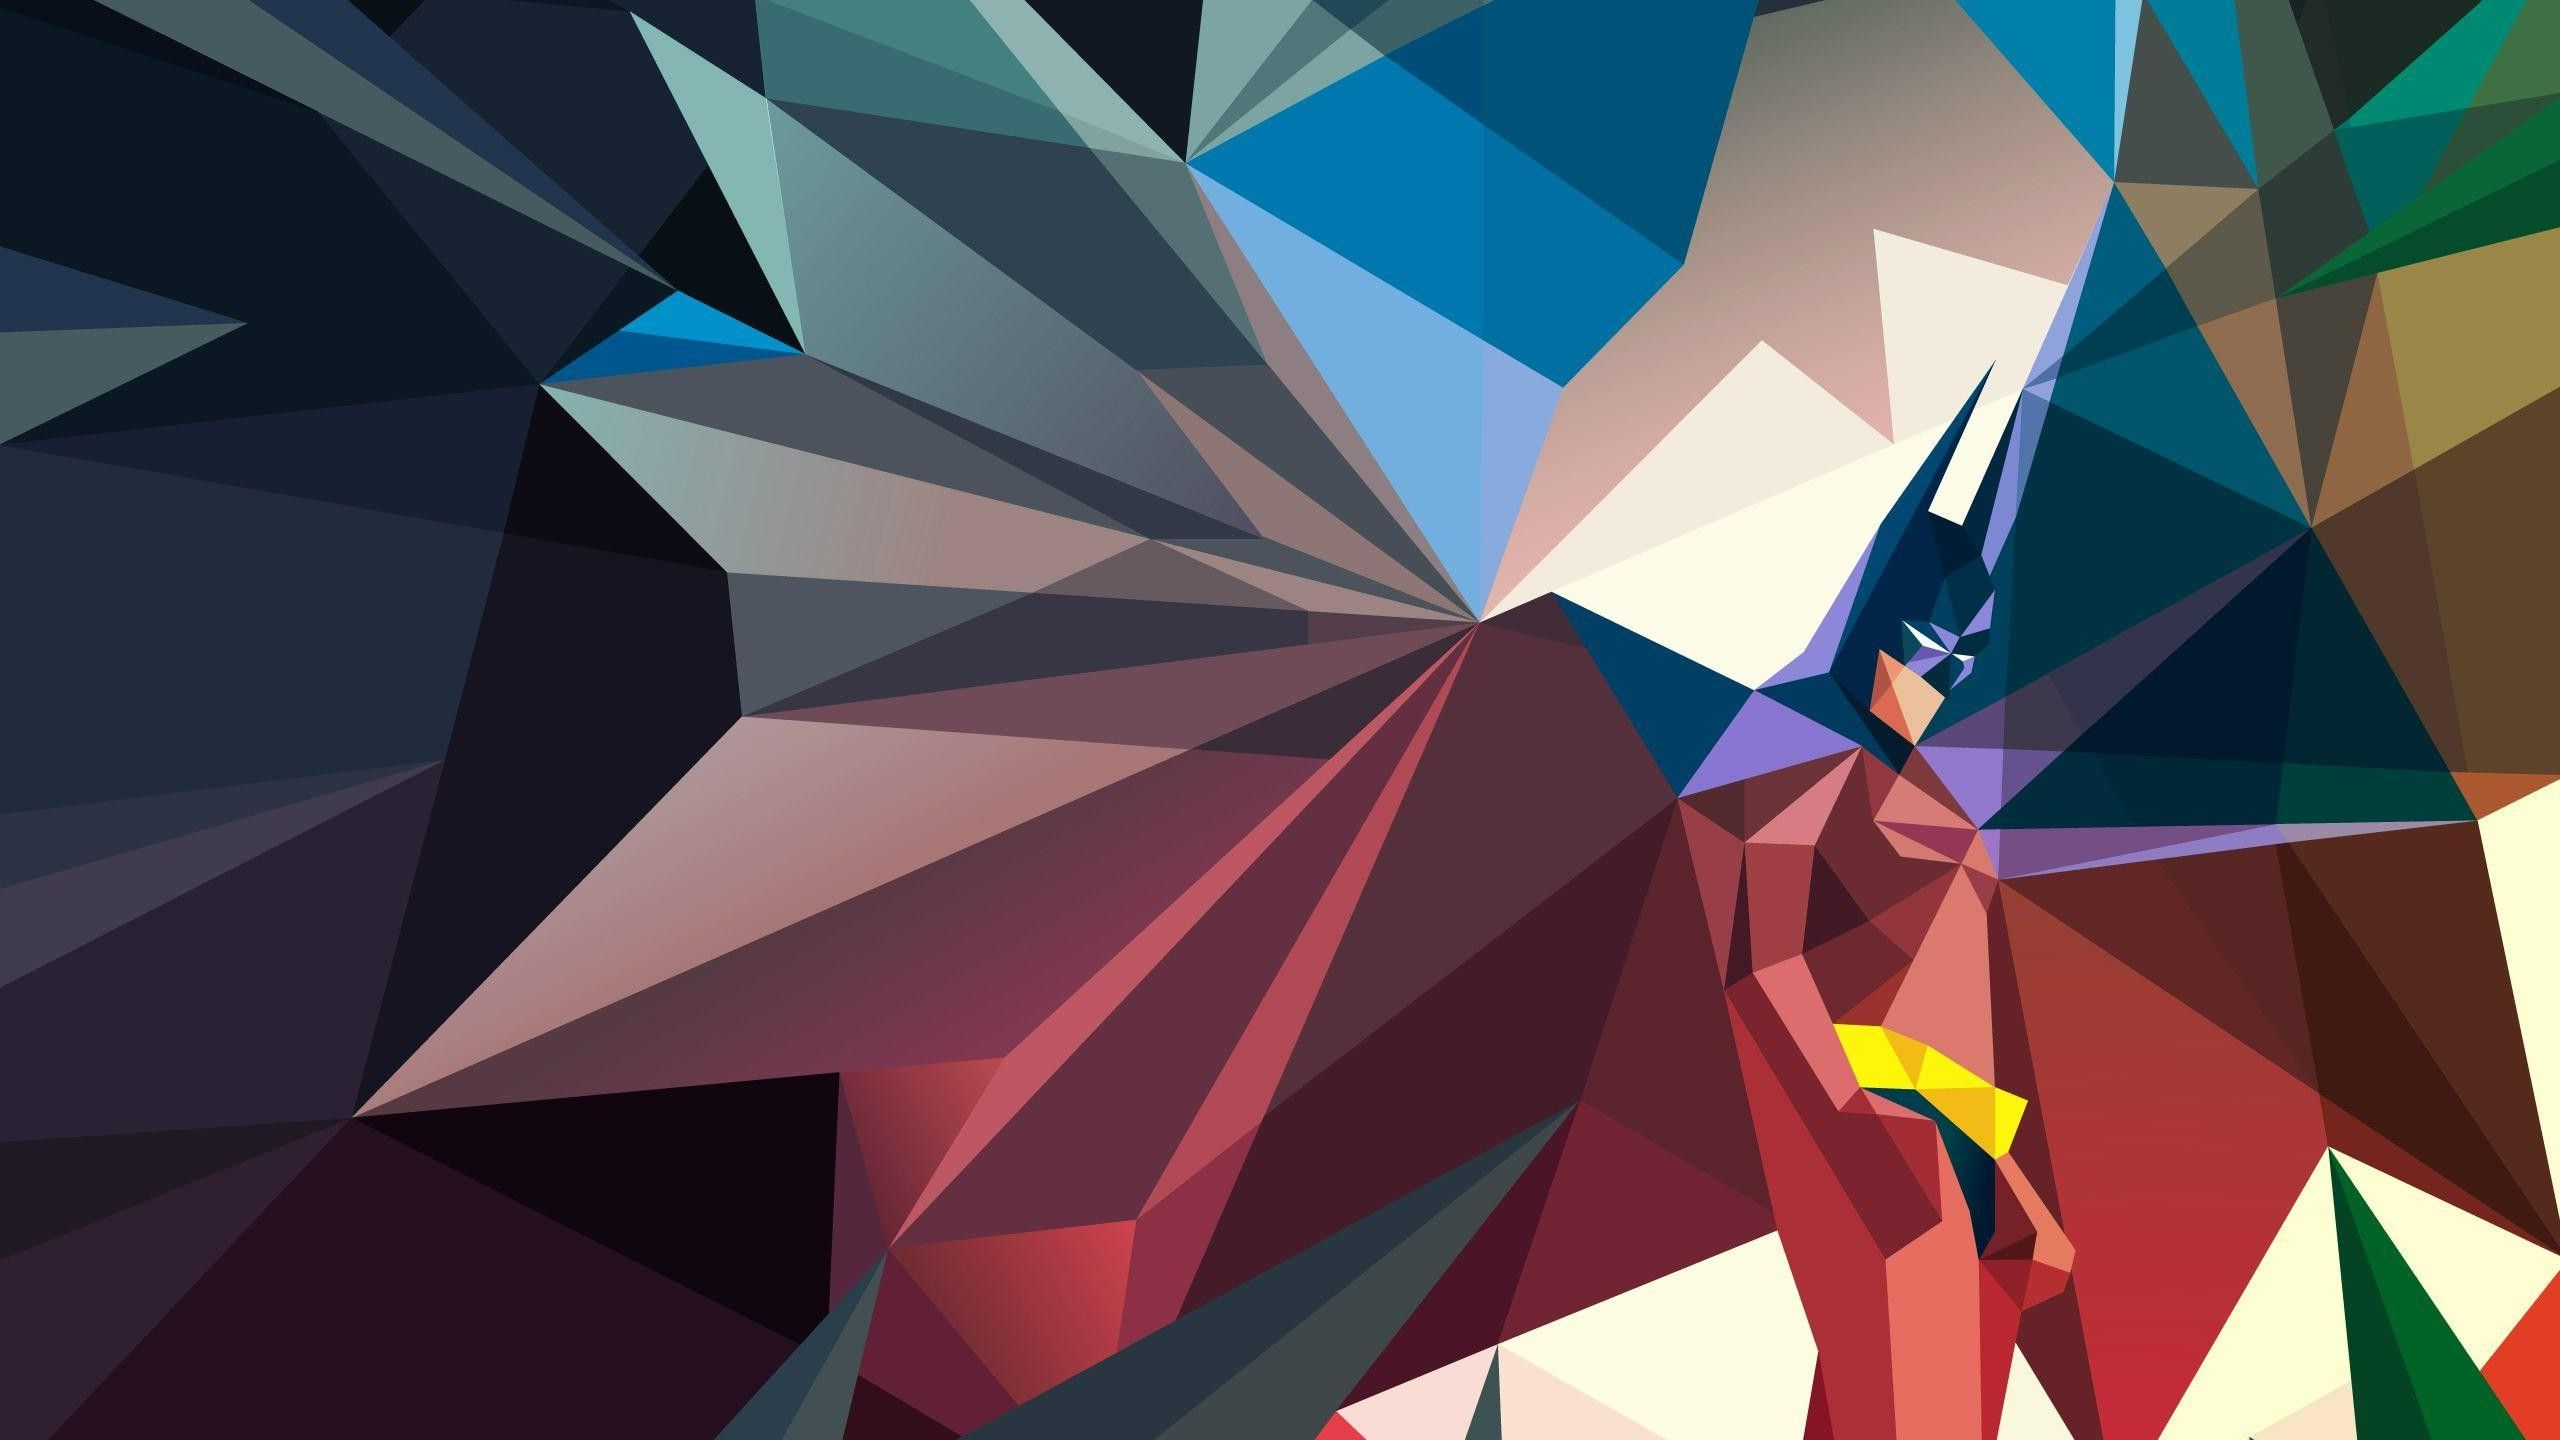 2560x1440 Low Poly Batman Background, Hd Wallpapers & backgrounds ...